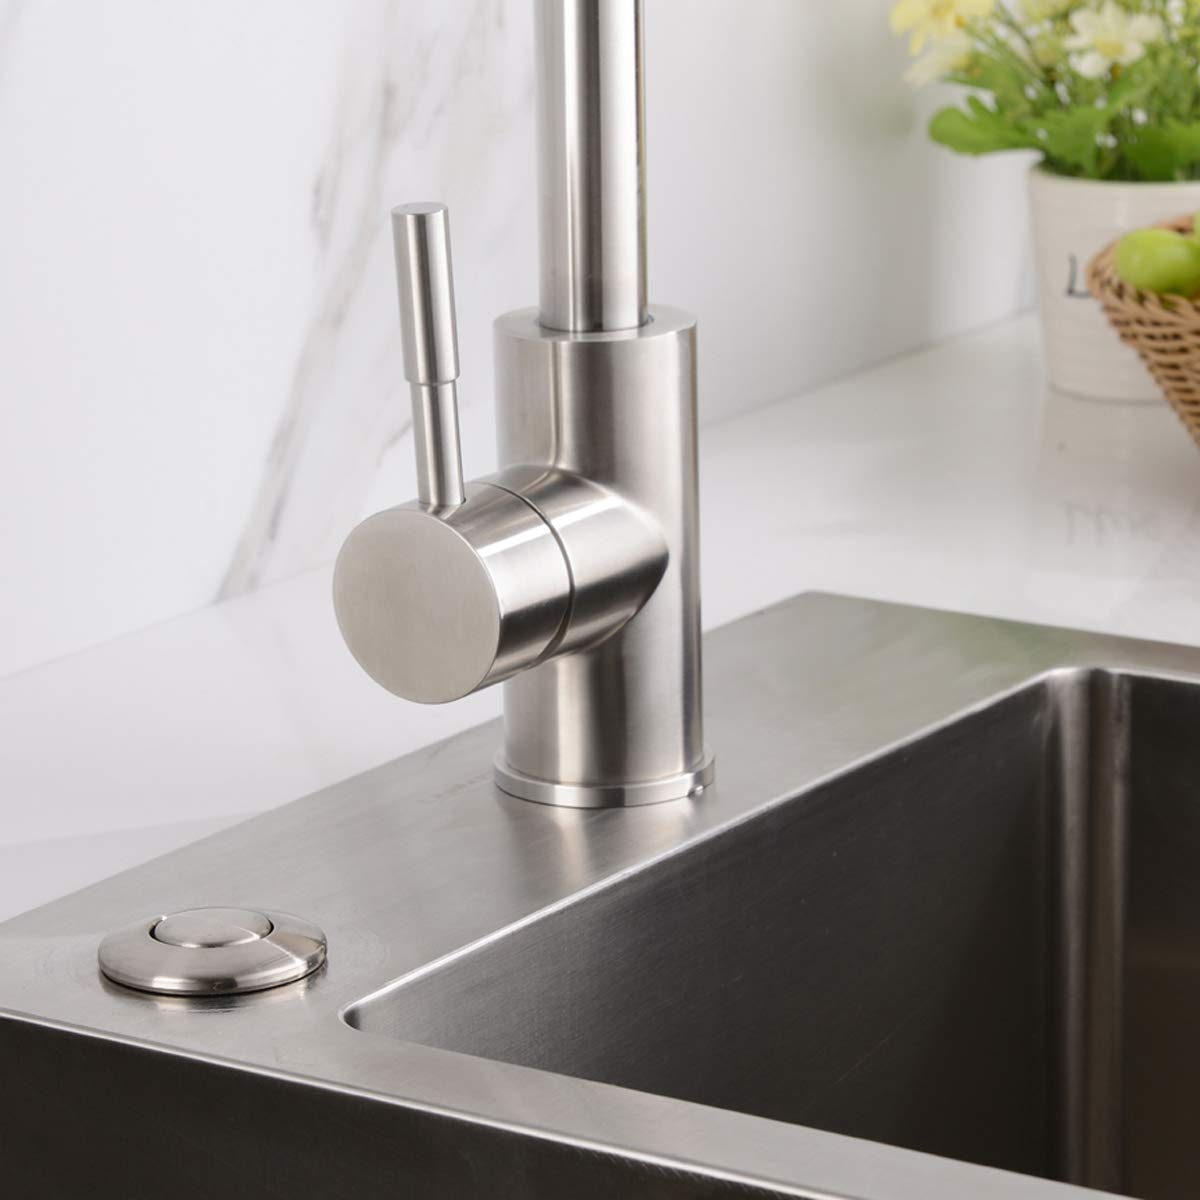 BESTILL Garbage Disposal Sink Top Air Switch Kit with Single Outlet, Brushed Nickel by BESTILL (Image #2)